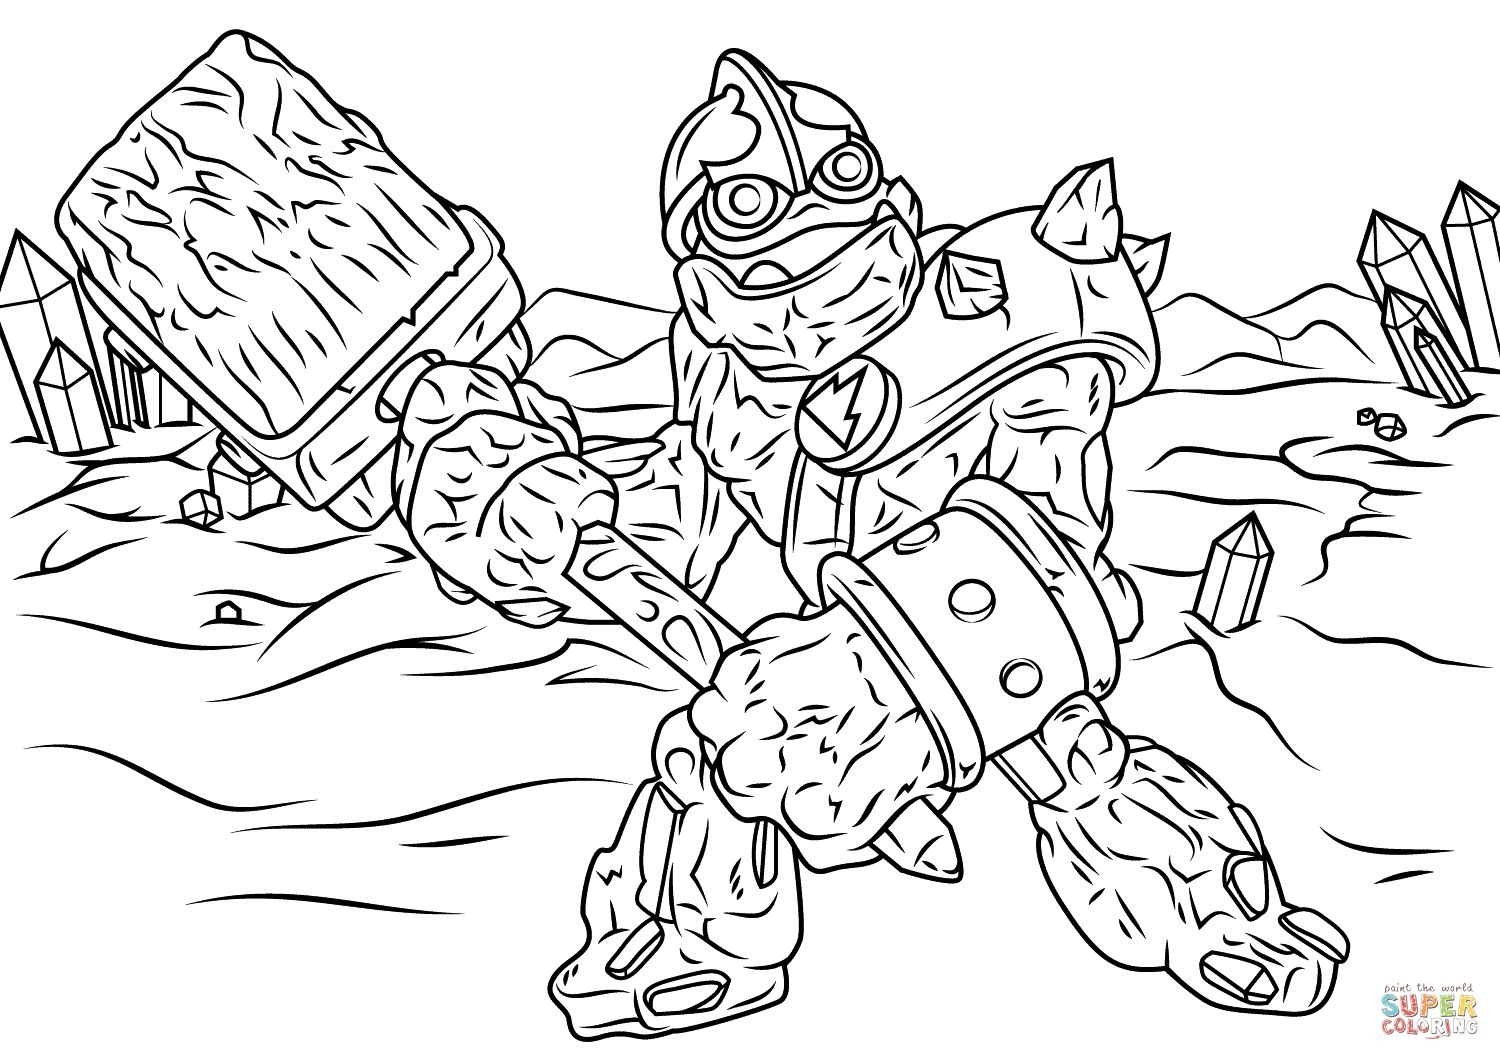 Skylander Coloring Pages Tree Rex Gallery Coloring Pages Adventure Time Coloring Pages Coloring Pages Inspirational